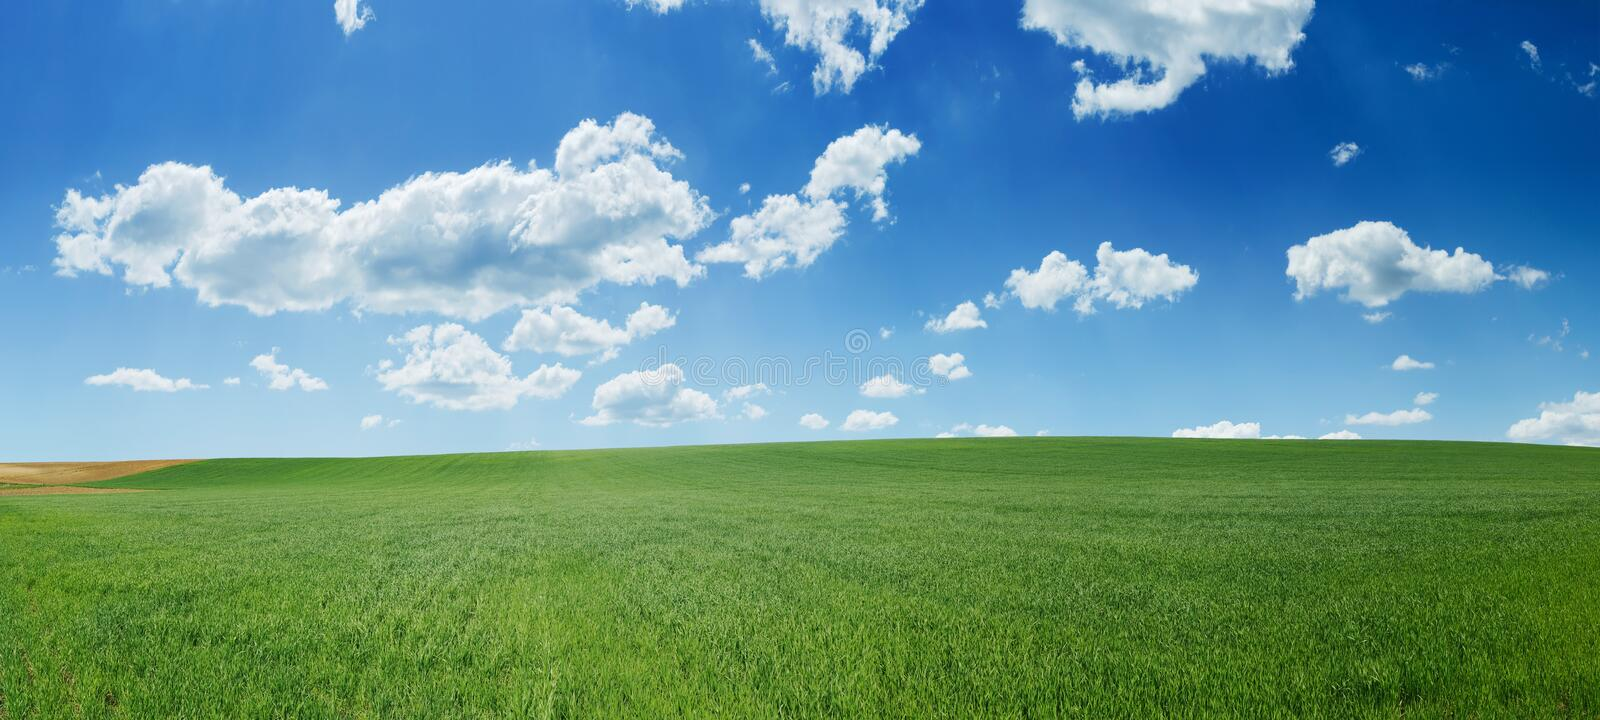 Green wheat field and blue sky panorama royalty free stock images